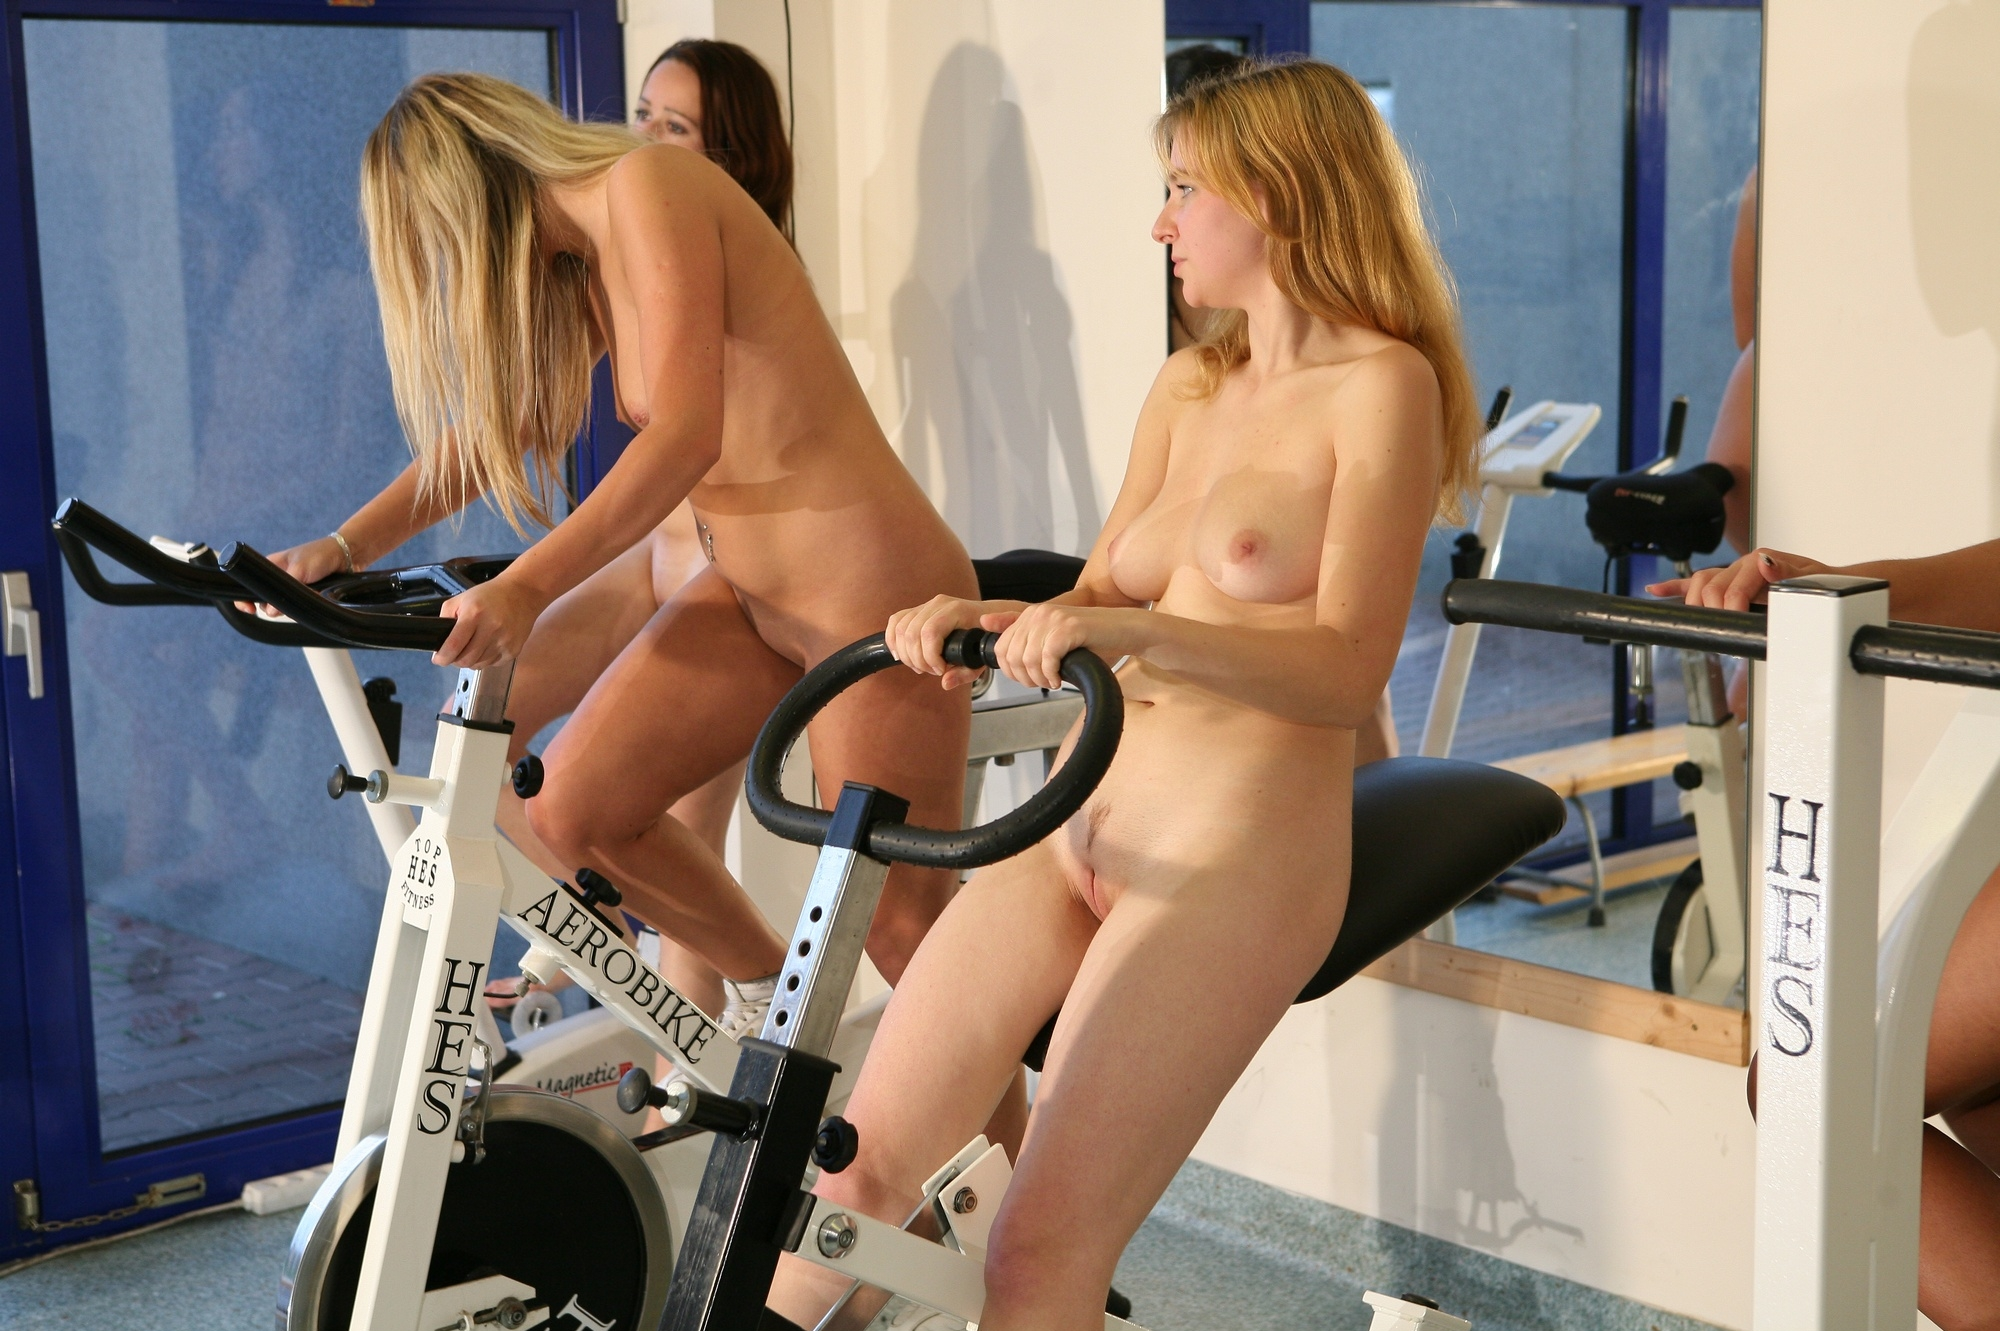 Girls working out topless